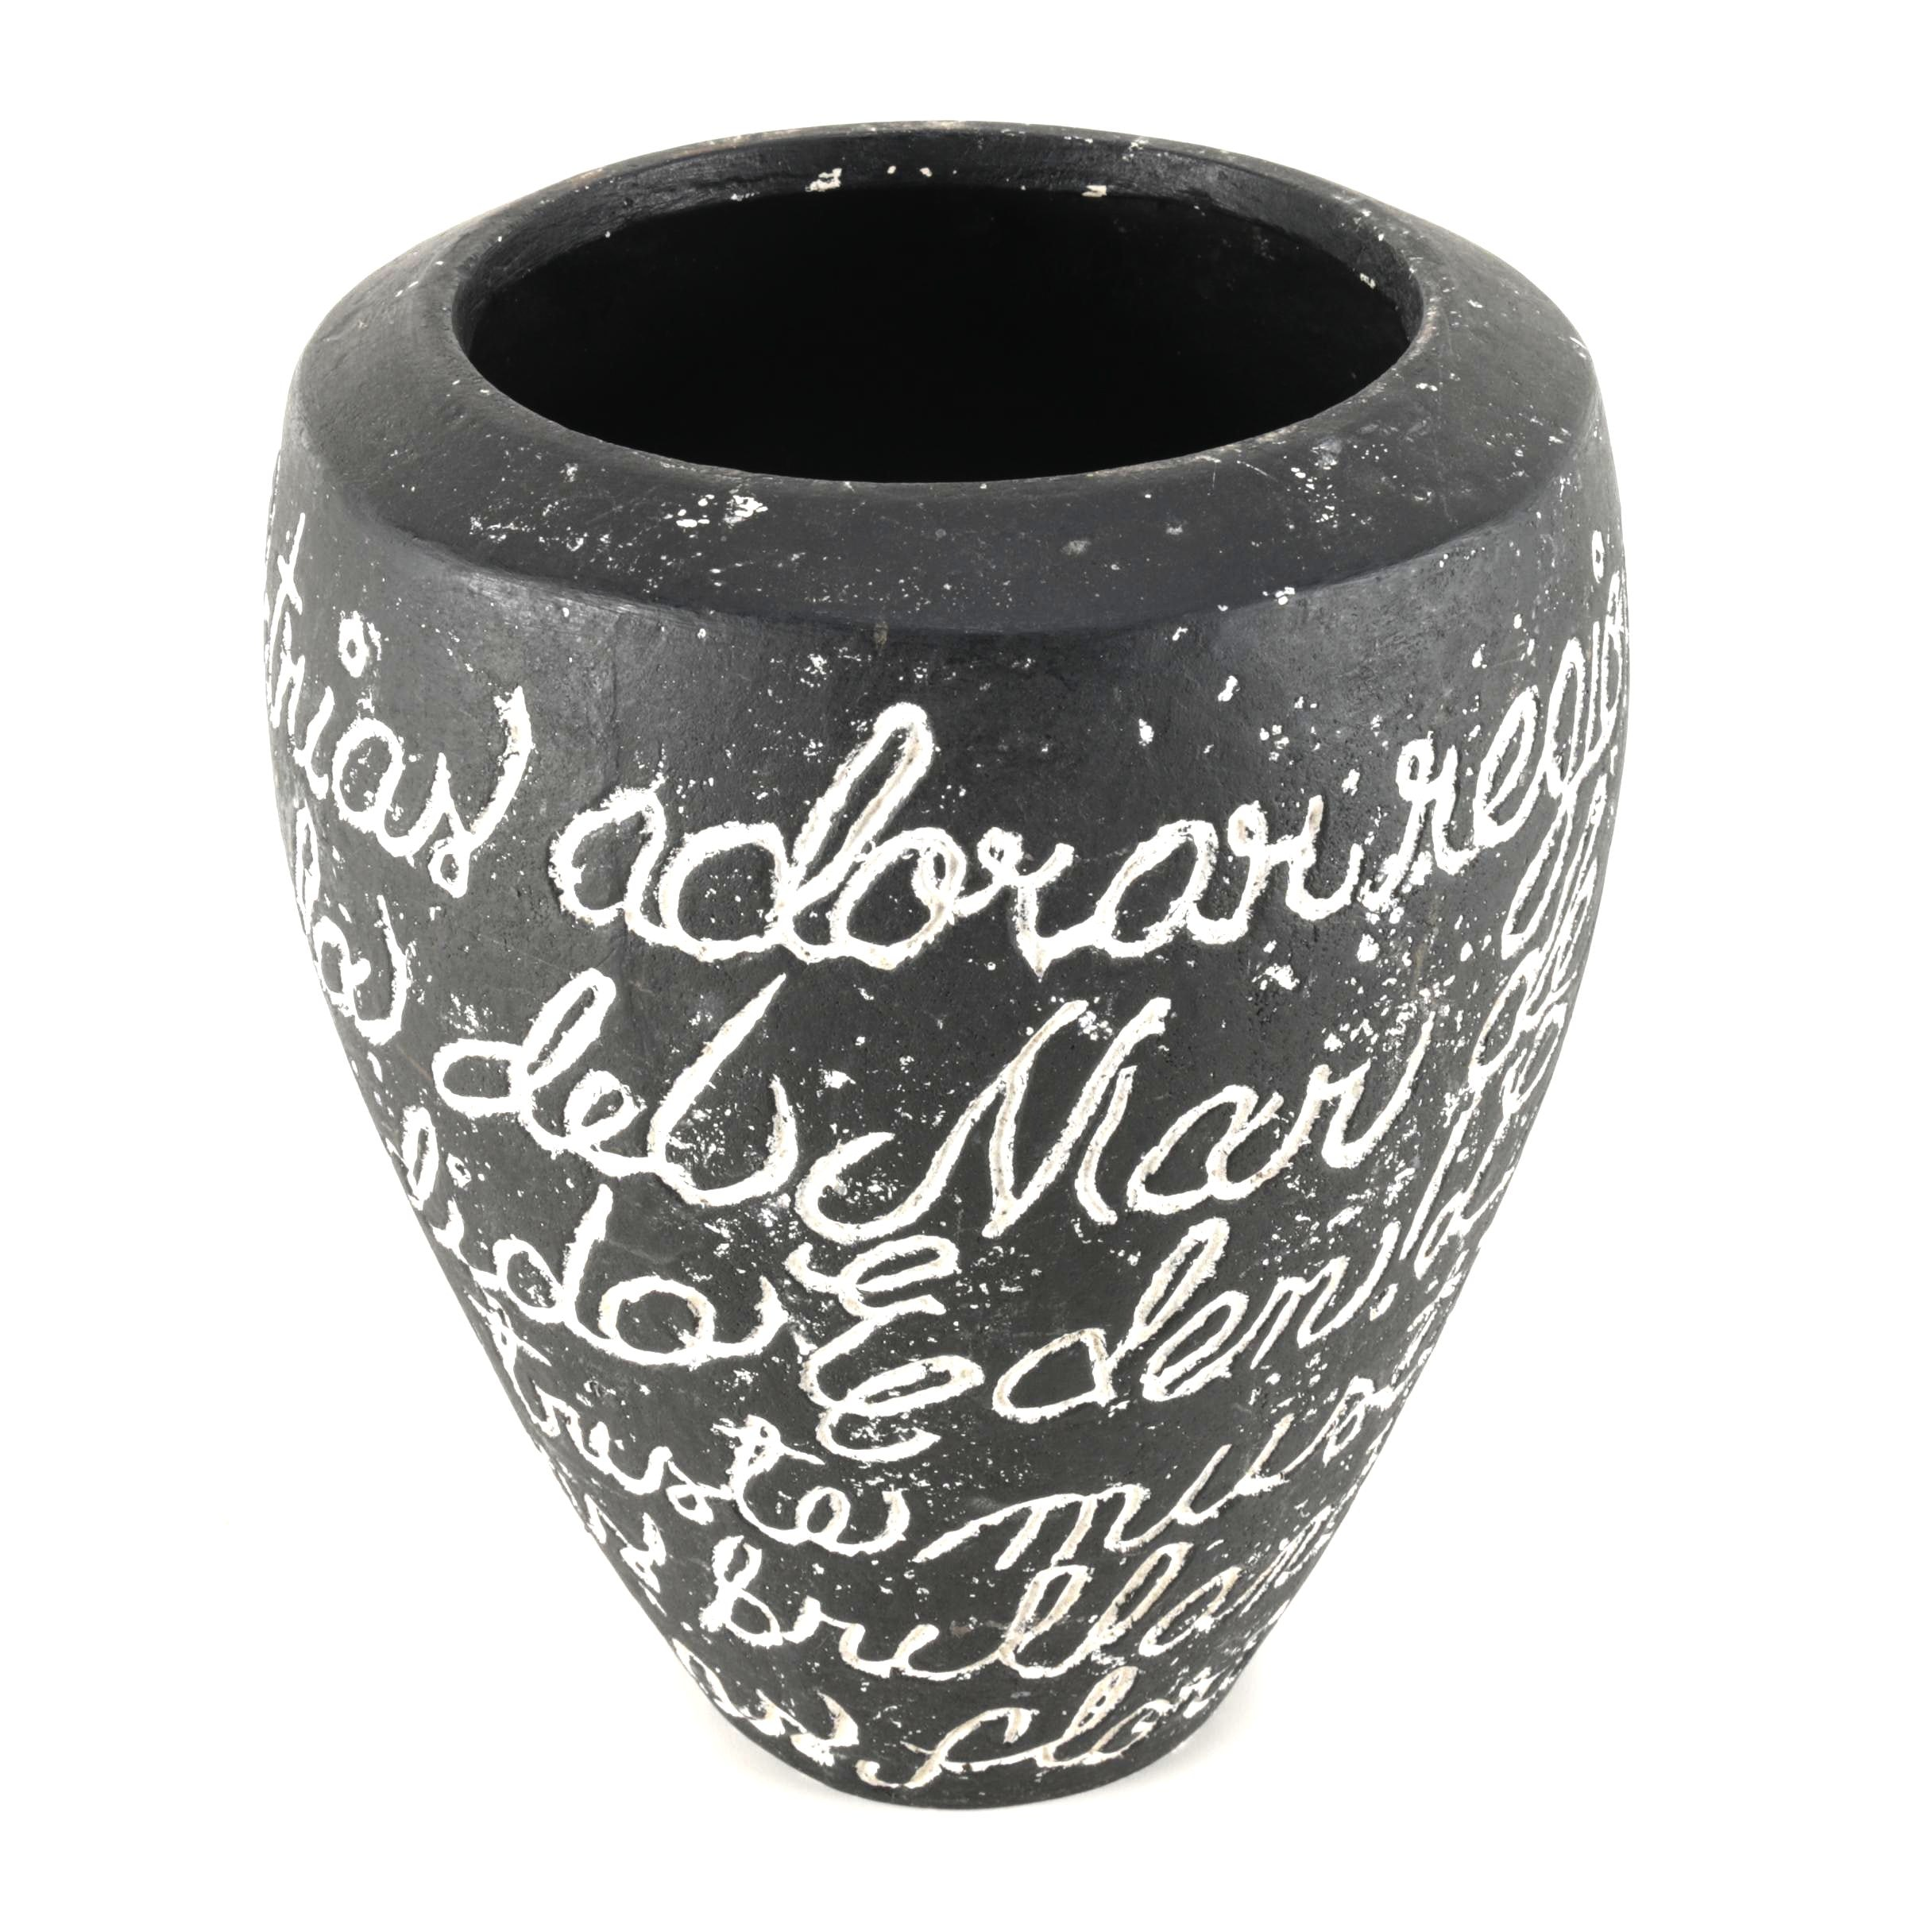 Large Black Vase With Spanish Calligraphy